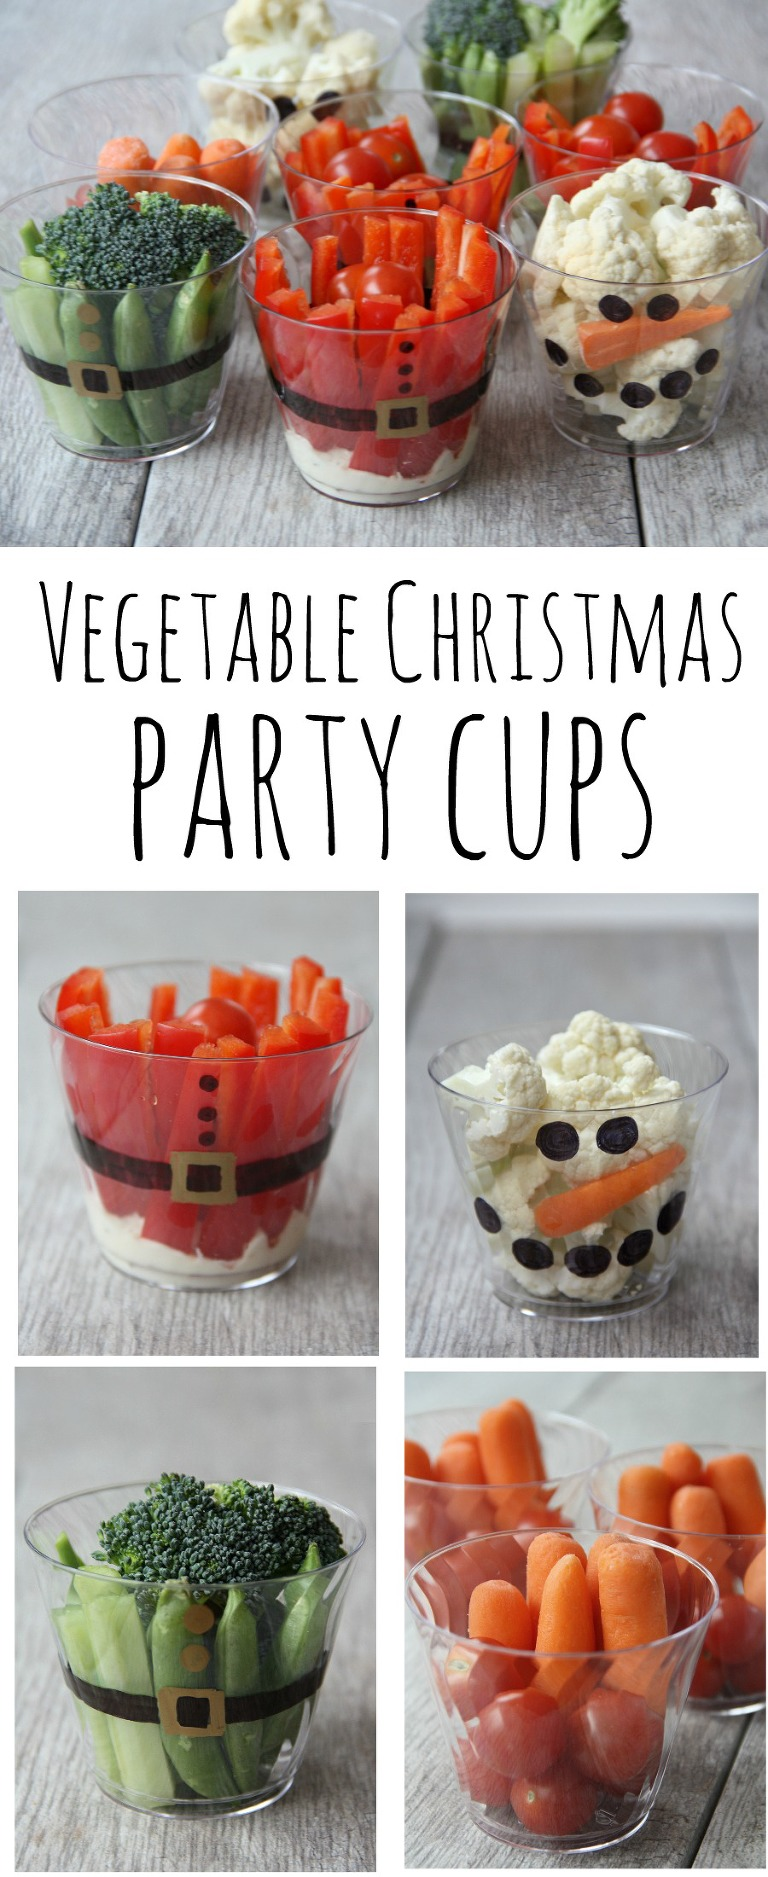 vegetable-christmas-party-cups